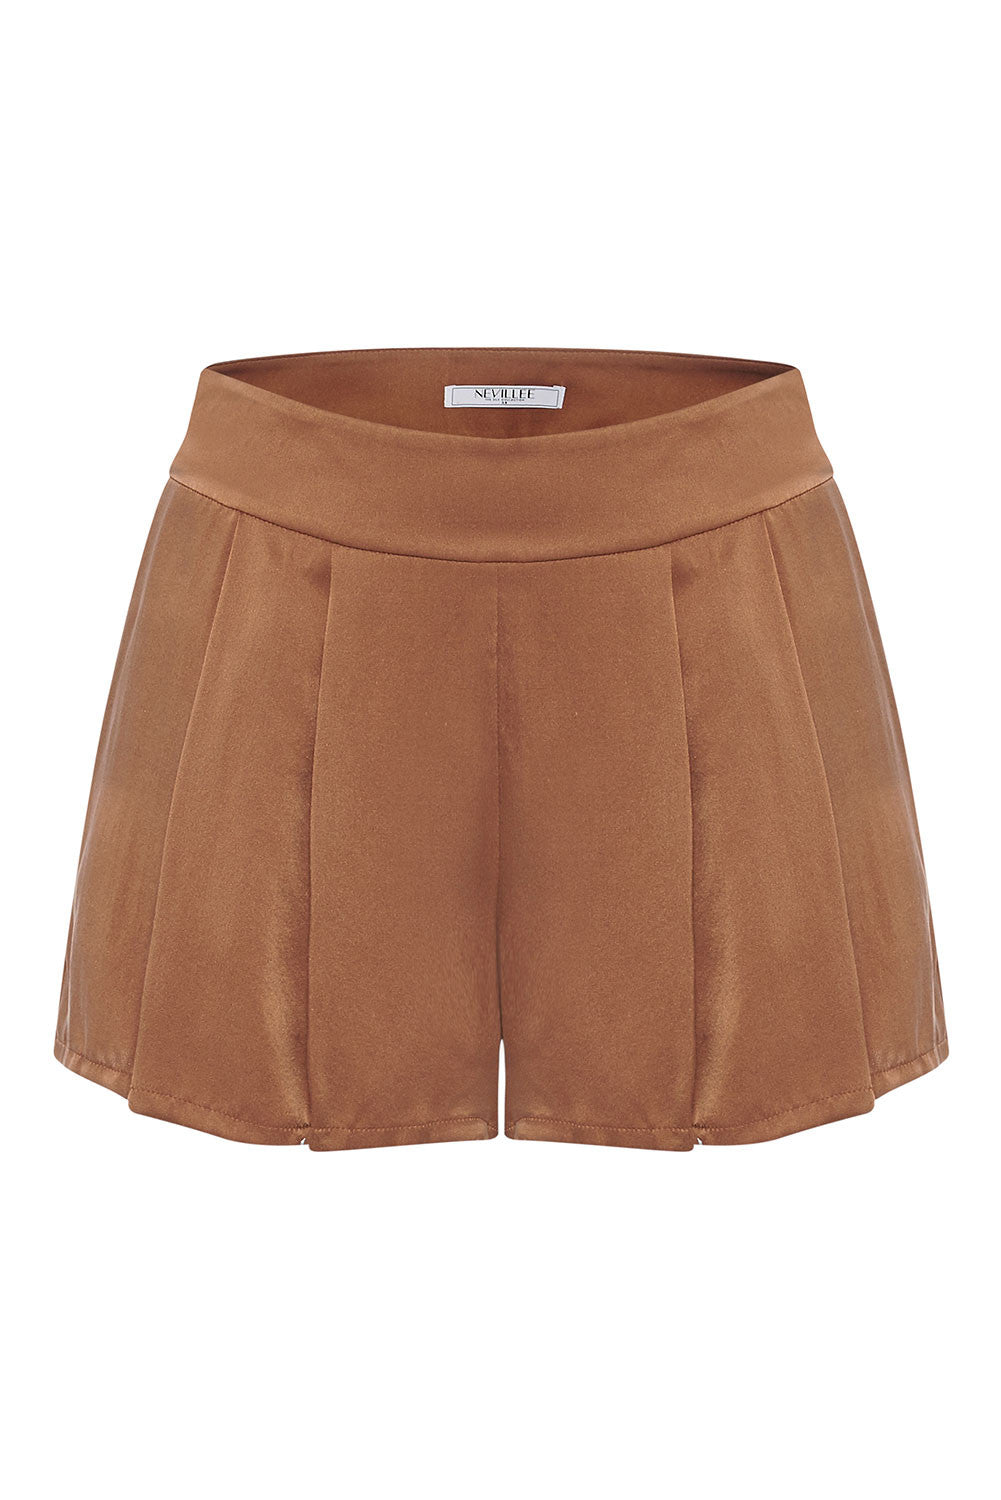 SILK SHORTS - BROWN LOVE